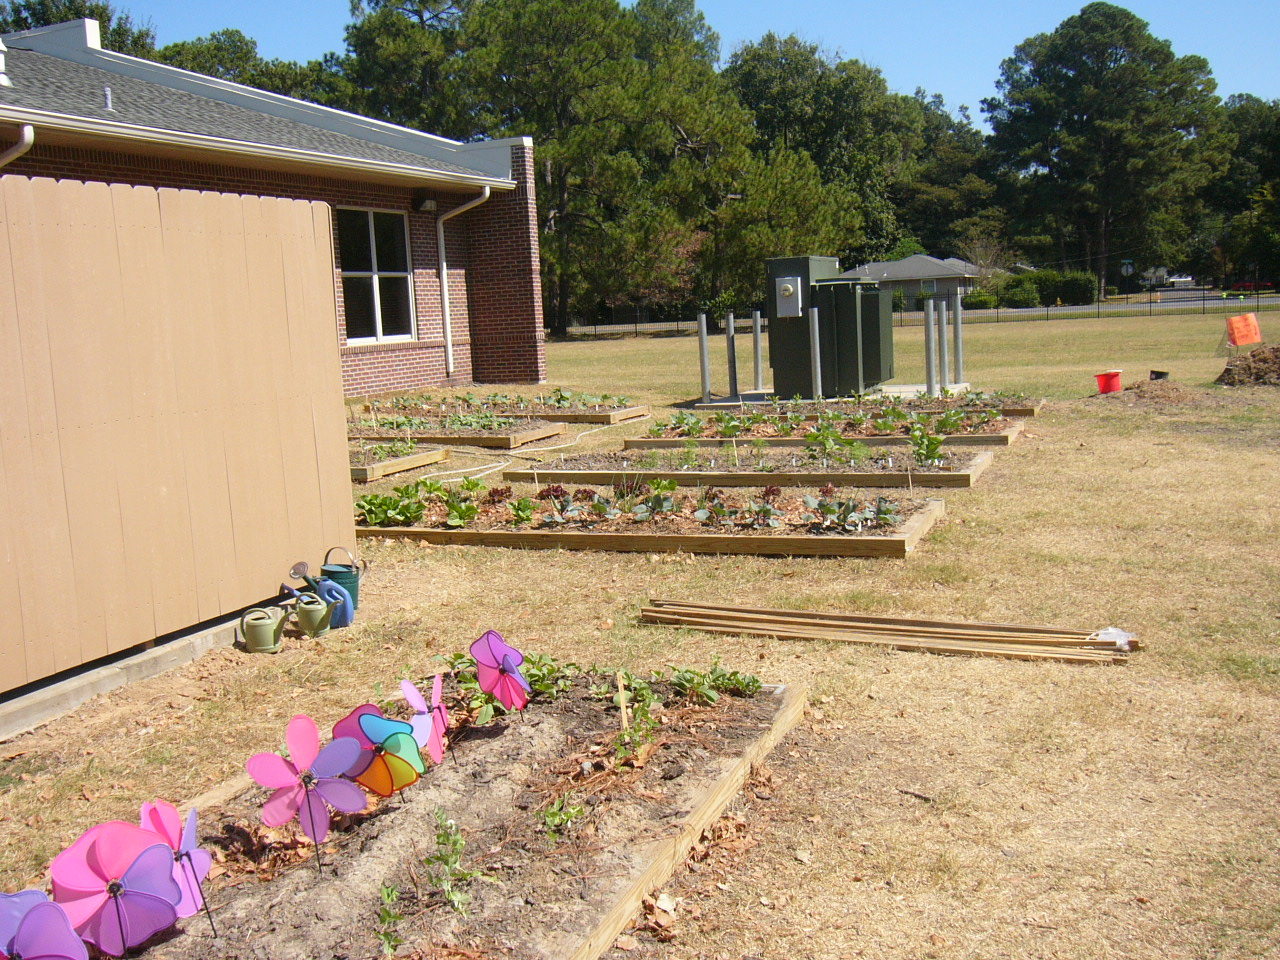 Louisiana Schools Greauxing Gardens